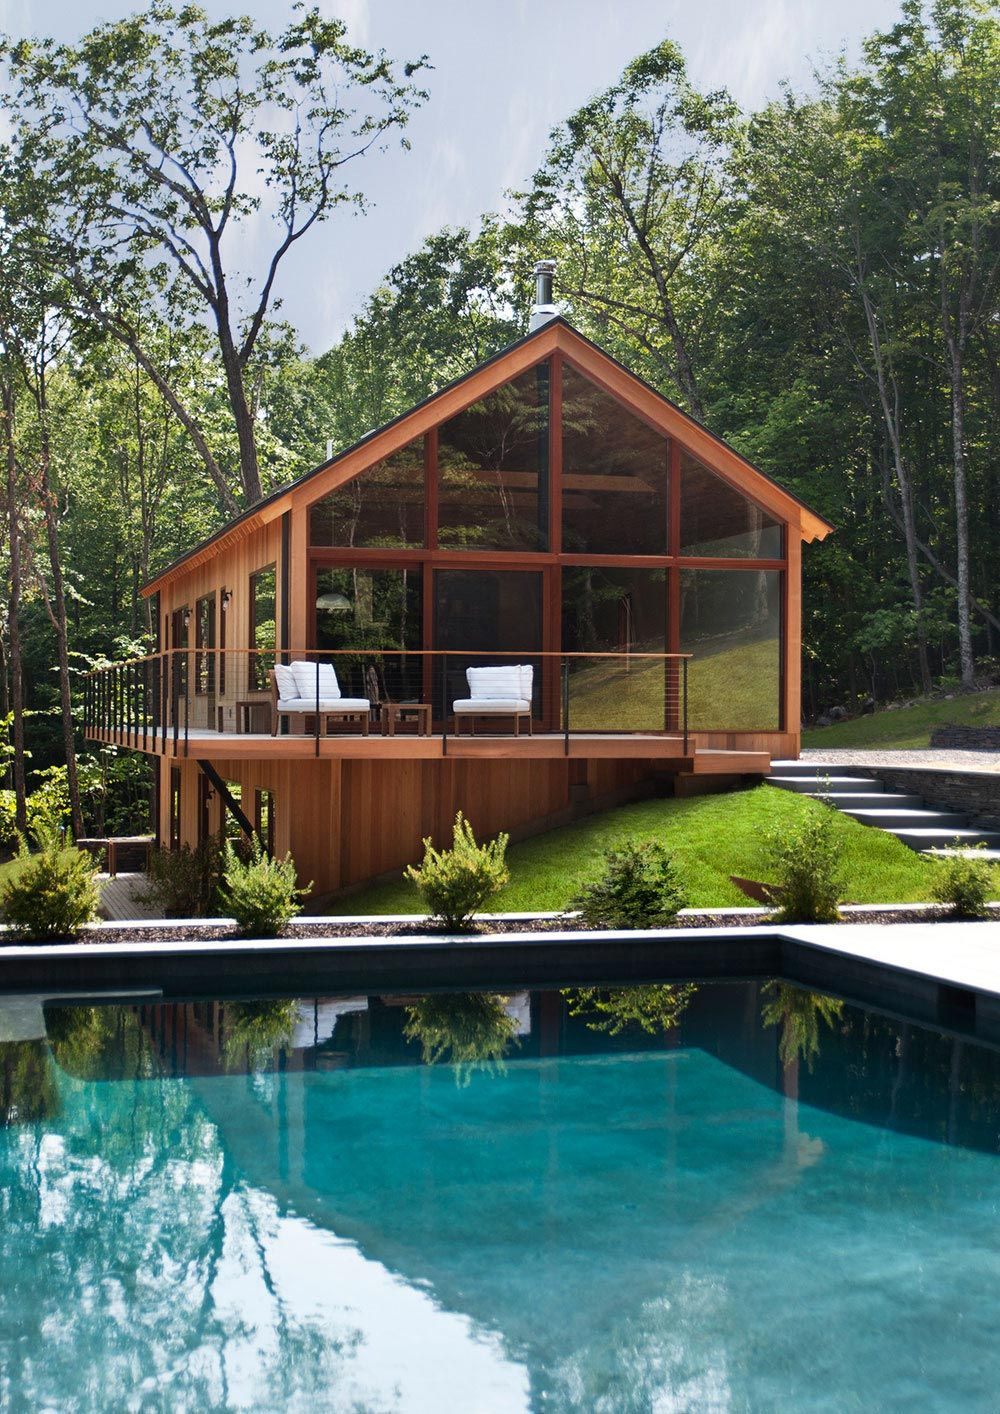 Wood and glass house embracing nature in kerhonkson new york